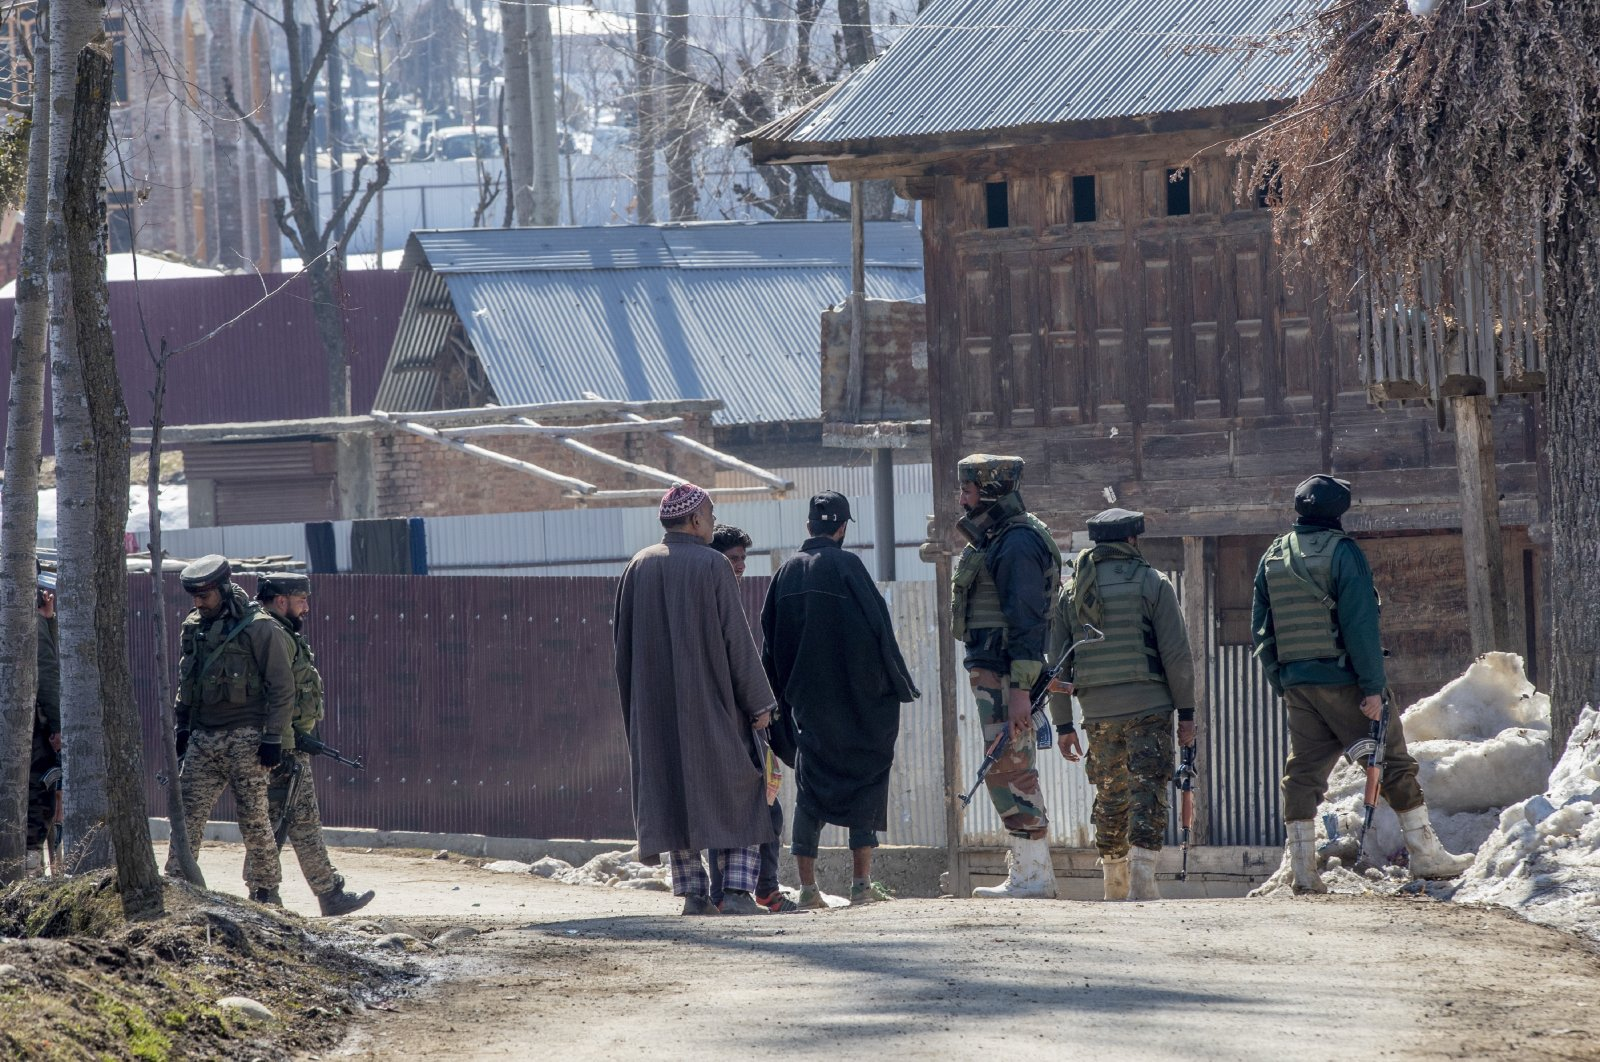 Paramilitary soldiers question Kashmiri villagers during a search operation in Beerwah area, Indian controlled Kashmir, Feb. 19, 2021. (AP Photo)